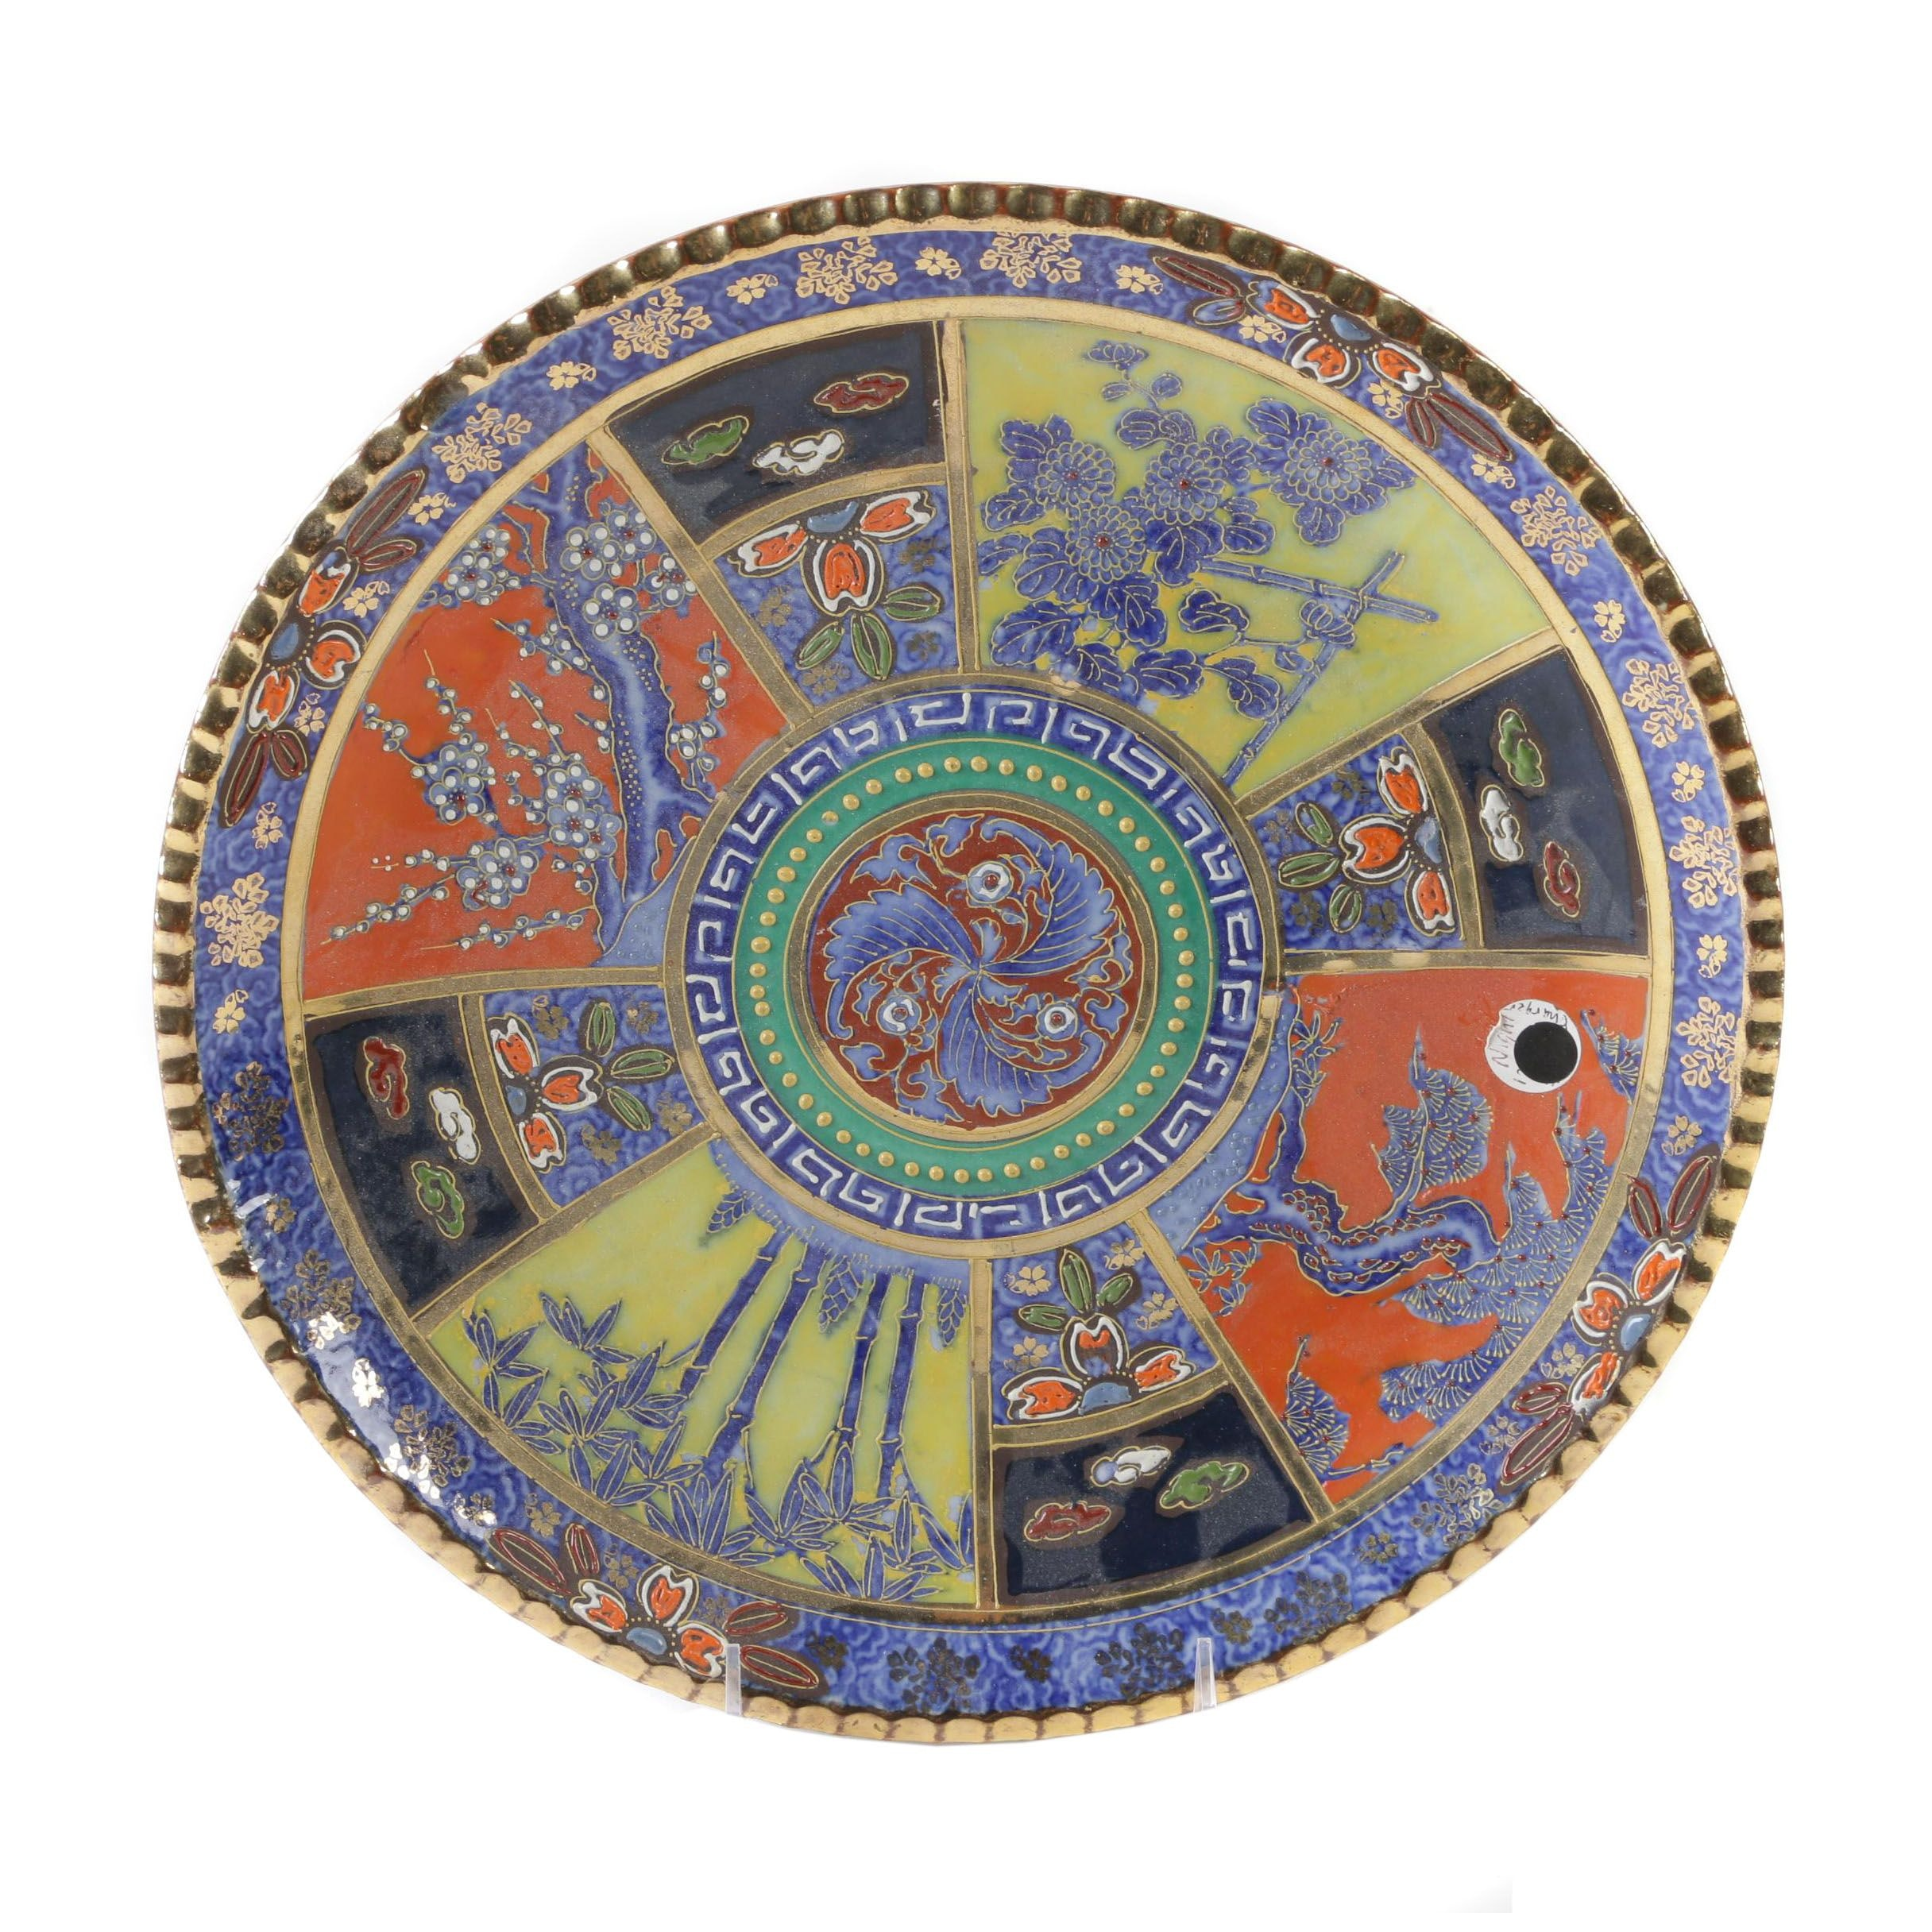 Chinese Imari Style Porcelain and Enamel Serving Plate